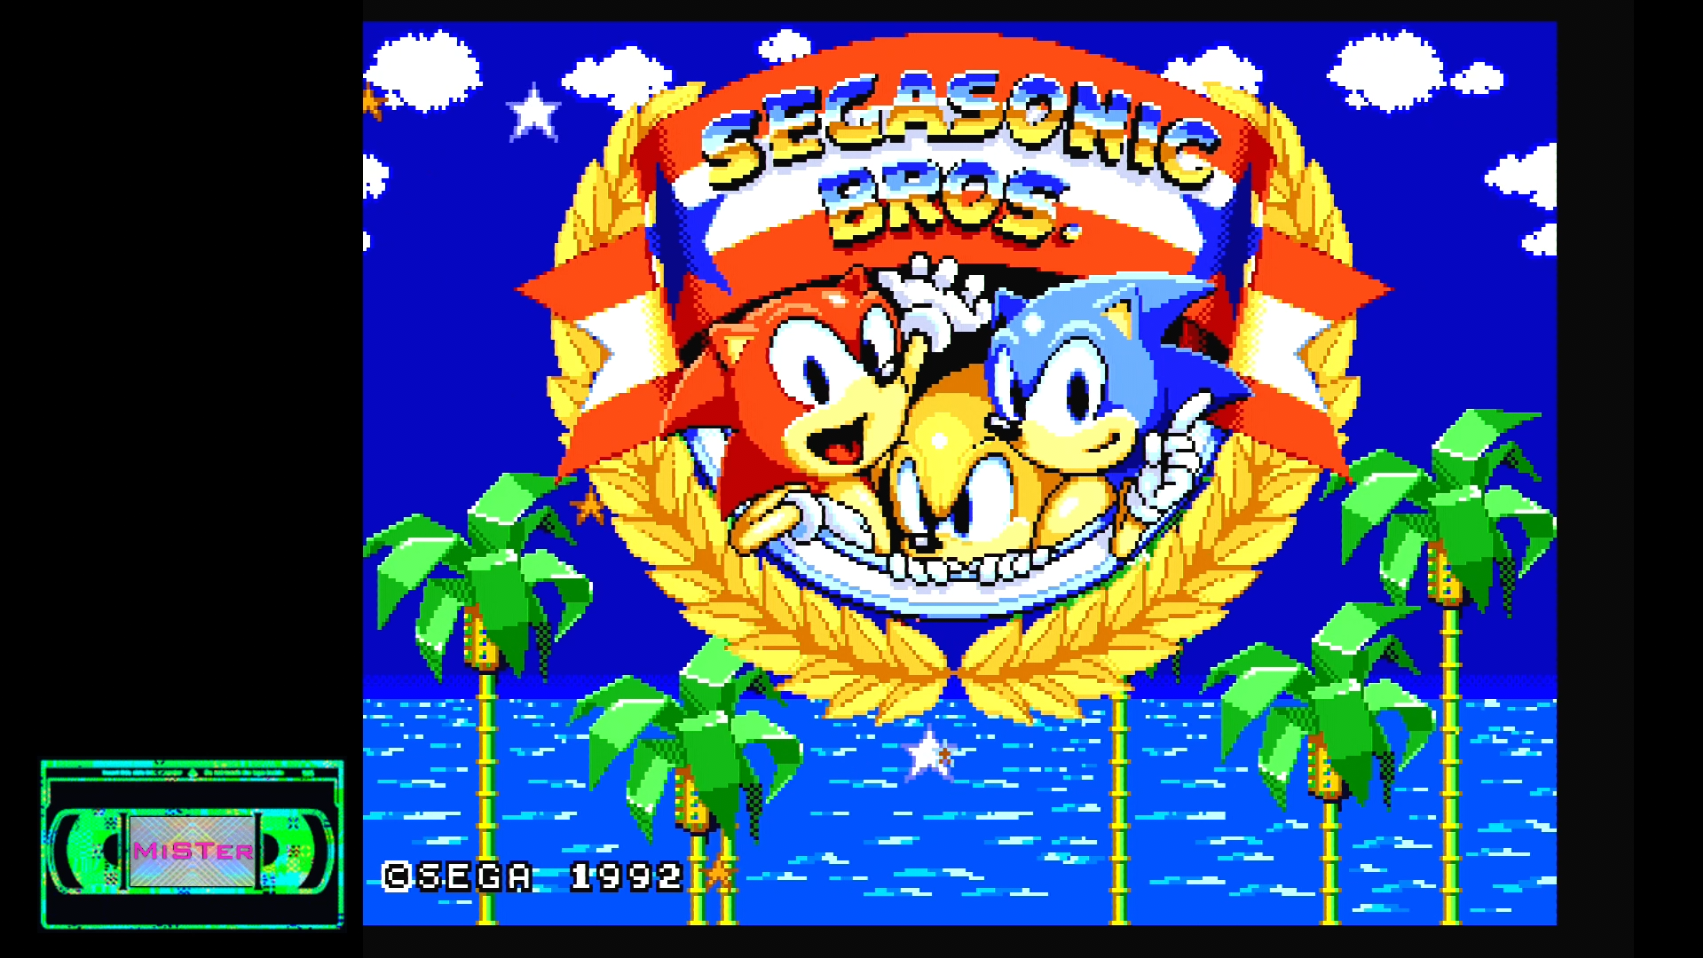 SegaSonic Bros MD Released – Sega Genesis